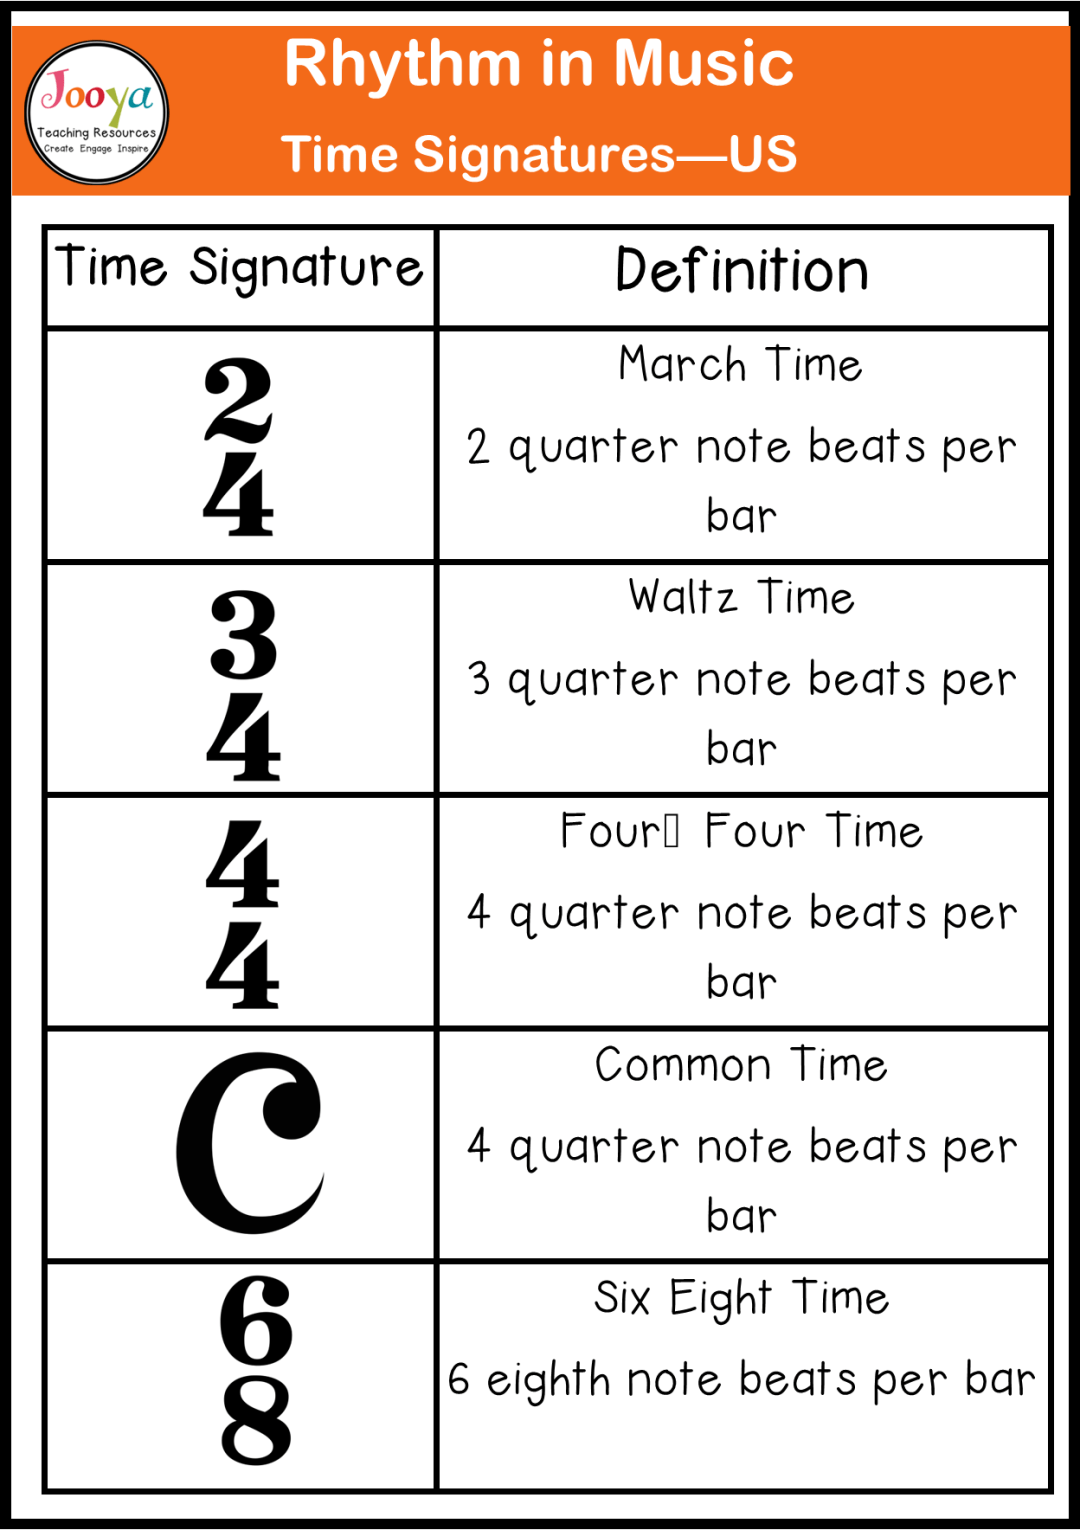 rhythm-in-music-time-signature-chart-US-definitions